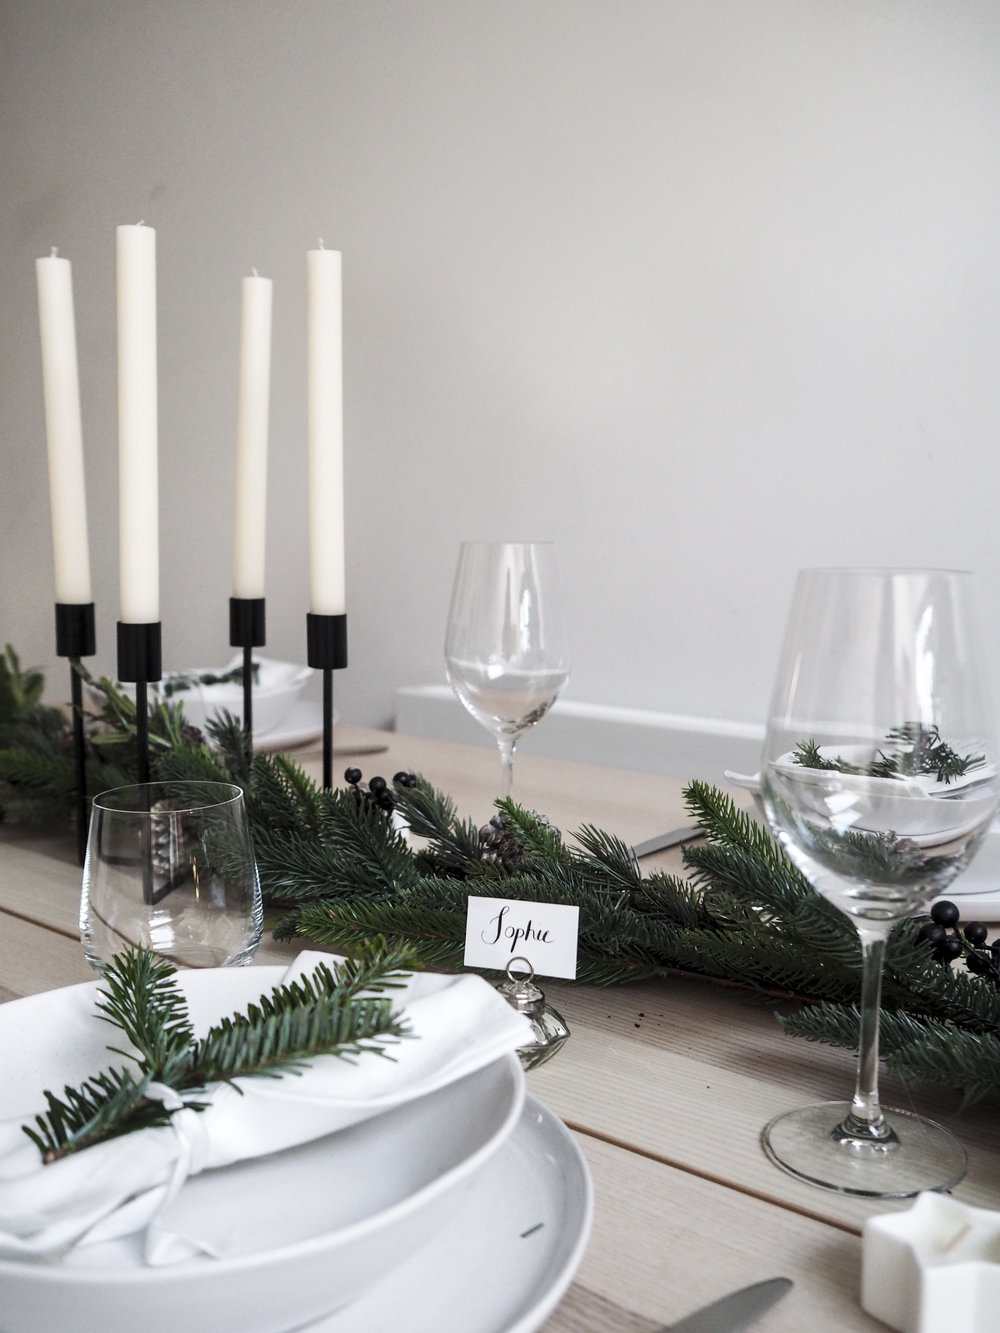 Belgravia Tumblrs  /  Belgravia Wine Glasses  /  Artisan Stoneware  /  Linen Napkins  /  Pure Dinner Candles  /   Place Card Holders  /  Pine Cone Garland